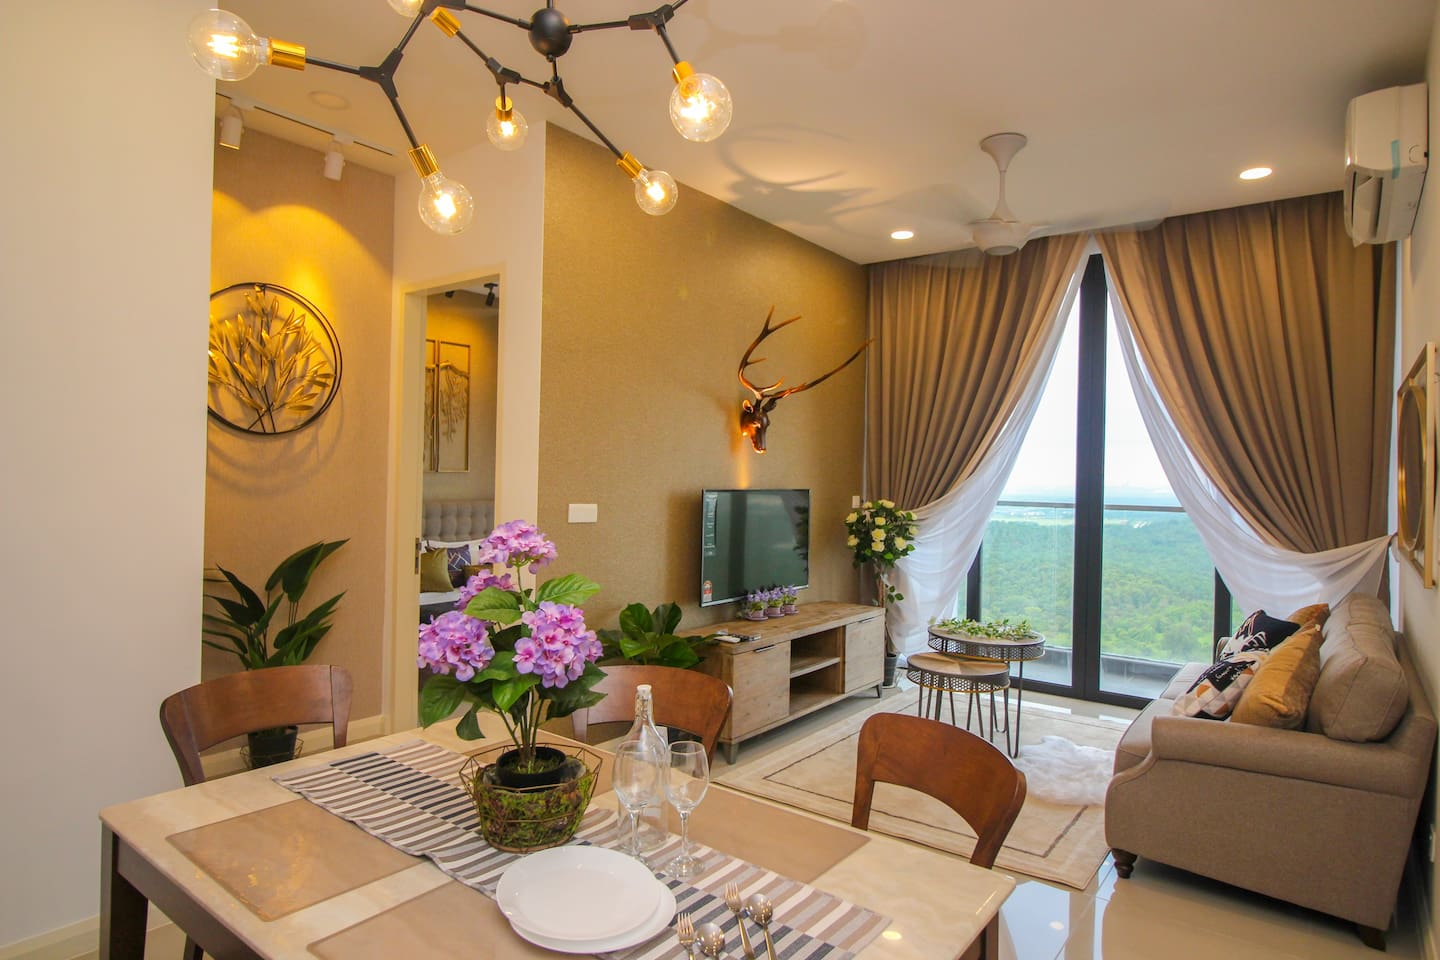 Modern design and spacious 2-bedrooms unit that will give you and your family the feel of home.